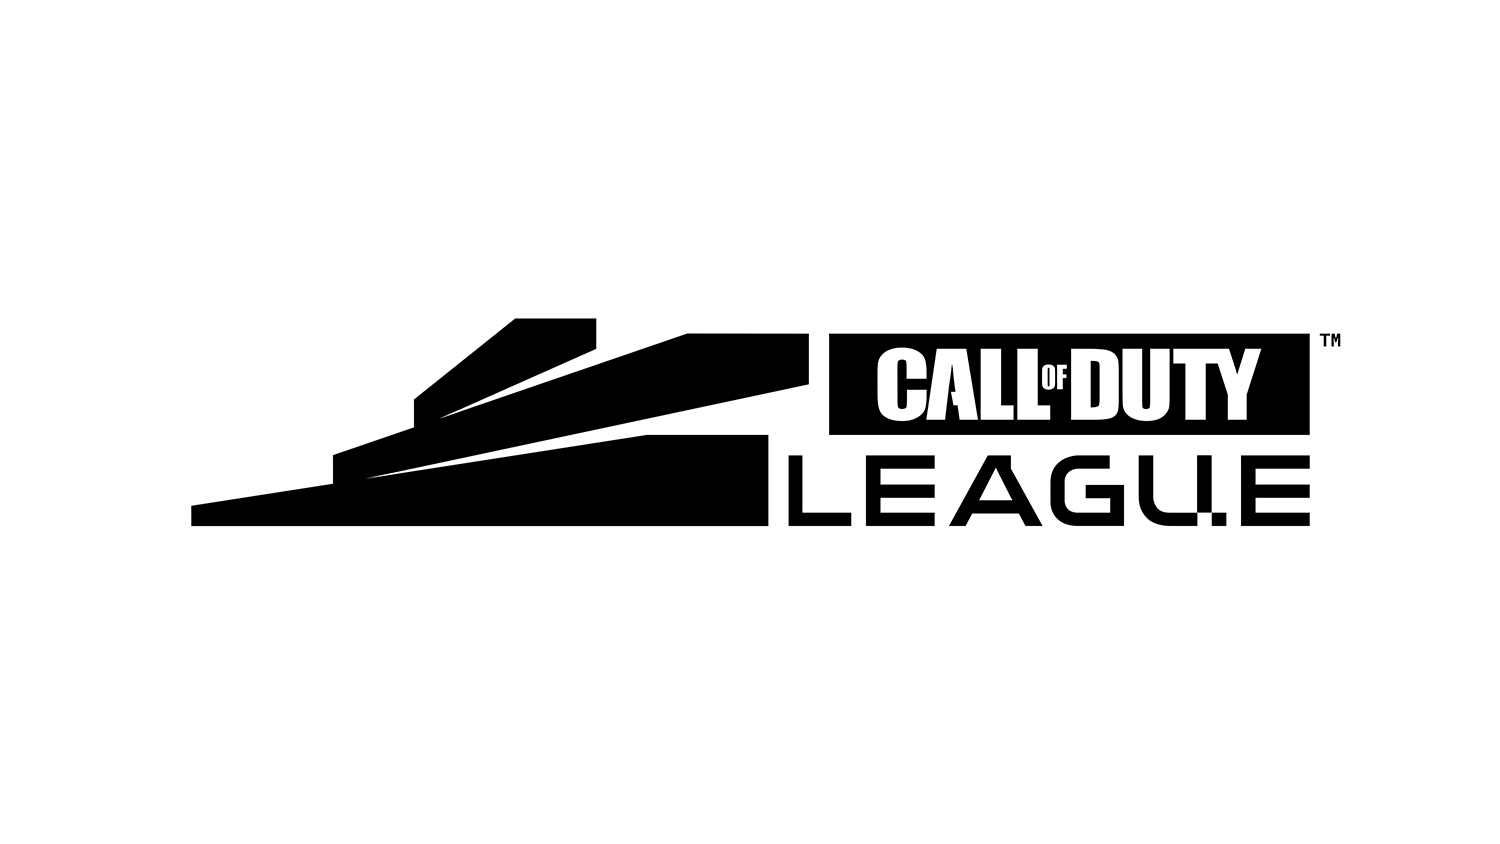 Call of Duty League 2020 schedule